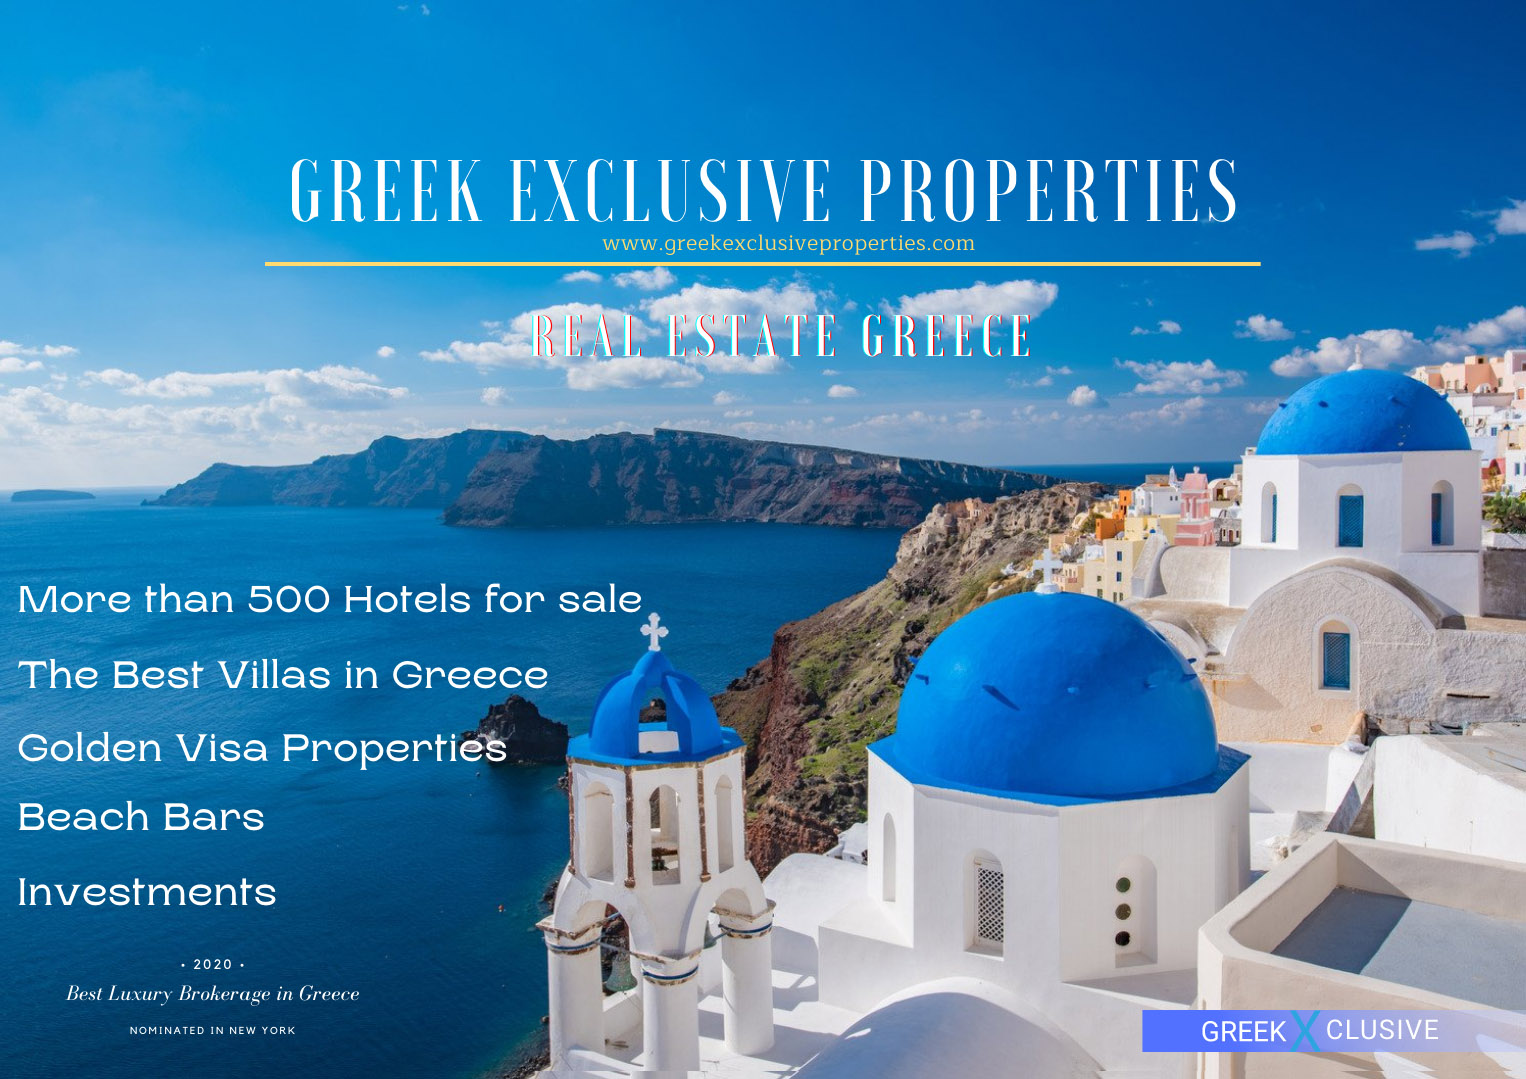 Greek Exclusive Properties, Real Estate Greece, Top Villas, Property in Greece, Luxury Estate, Home for sale in Greece